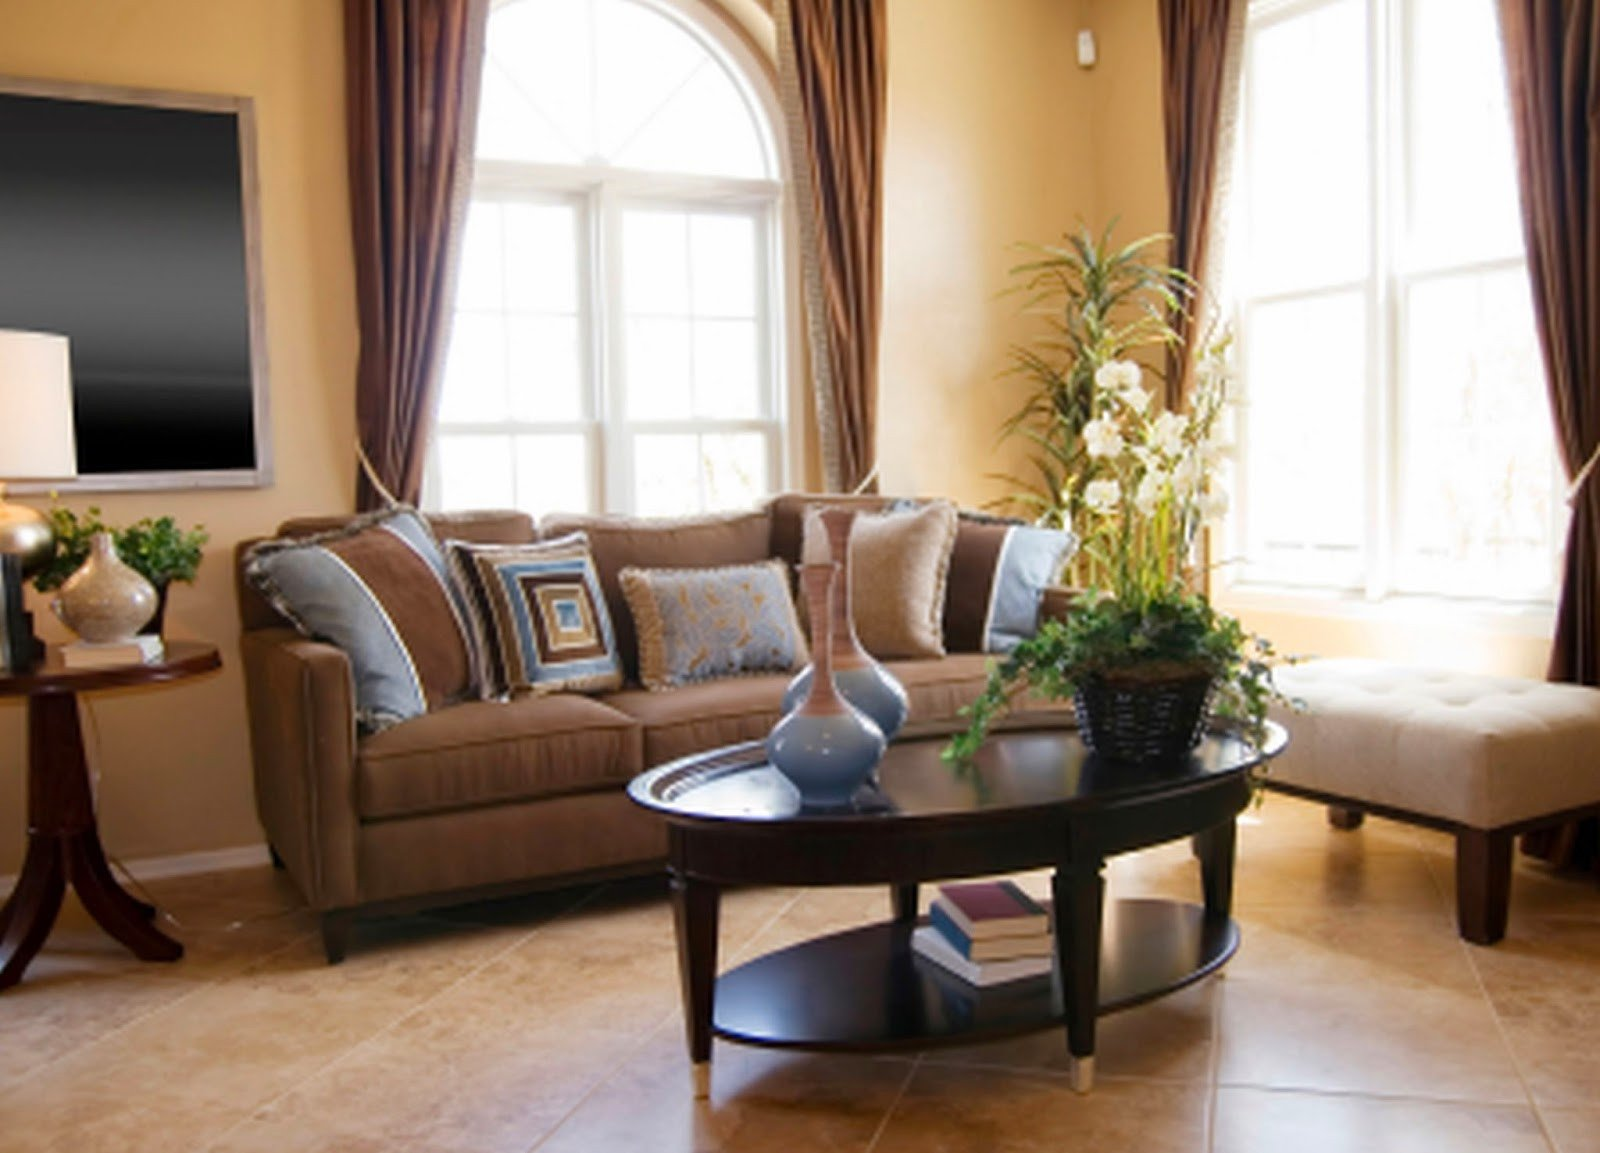 Brown Living Room Ideas Lovely 2 Living Room Decor Ideas Brown Leather sofa